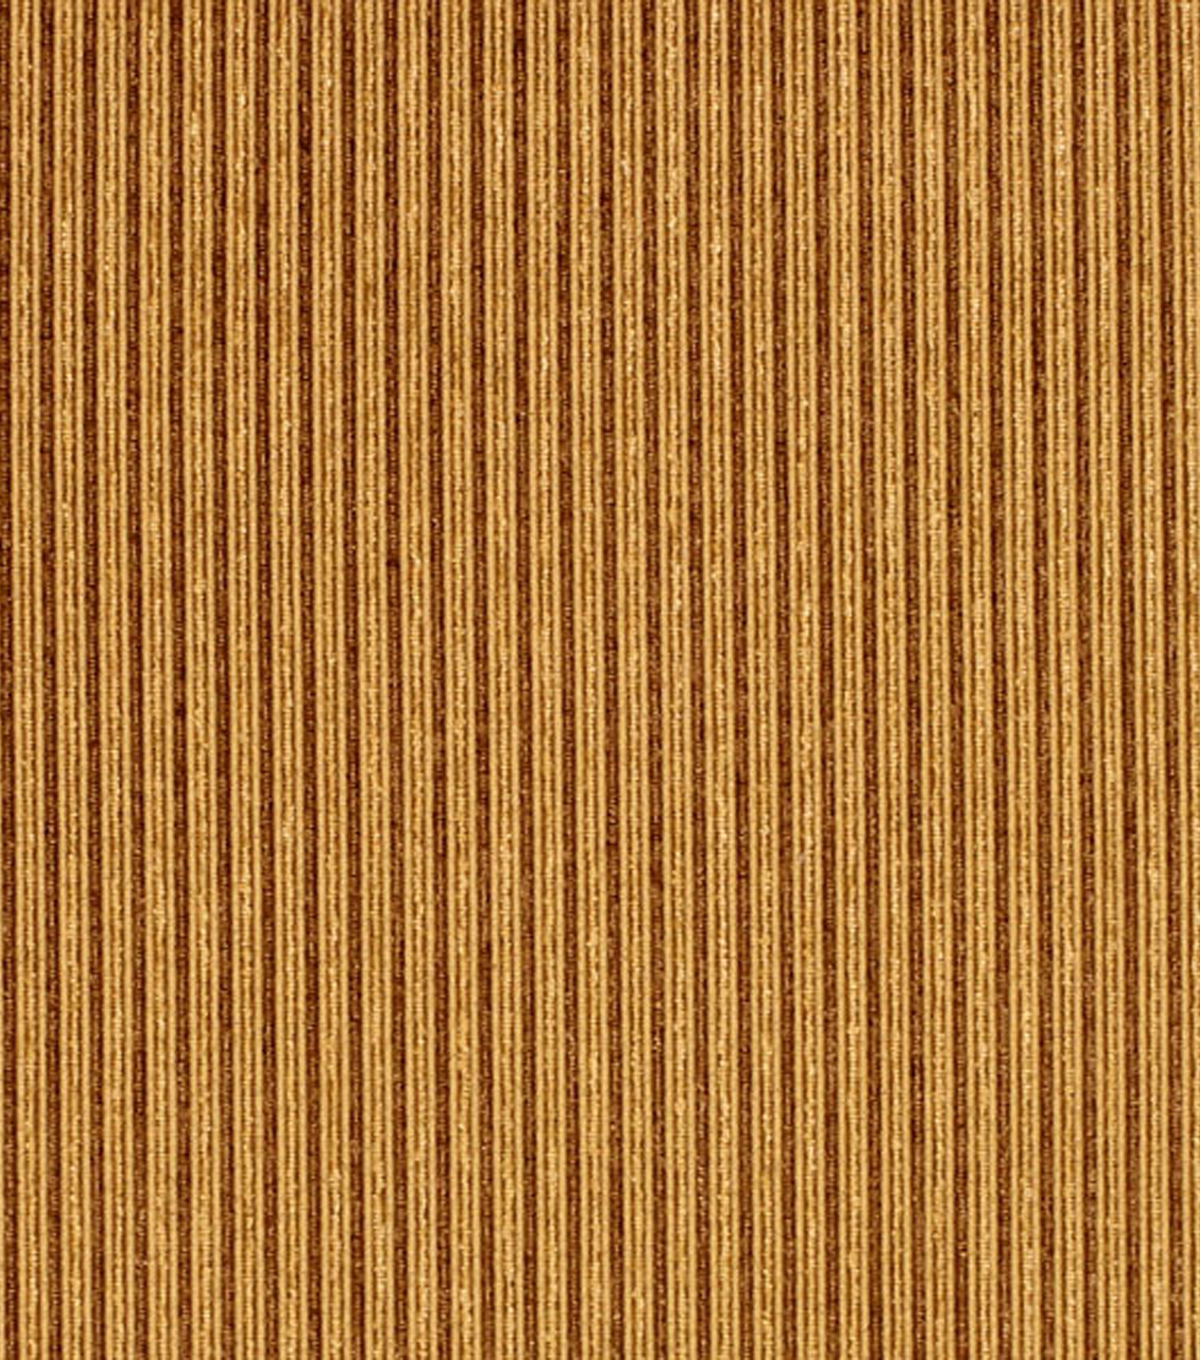 Home Decor 8\u0022x8\u0022 Fabric Swatch-Barrow  M7651-5330 Caramel